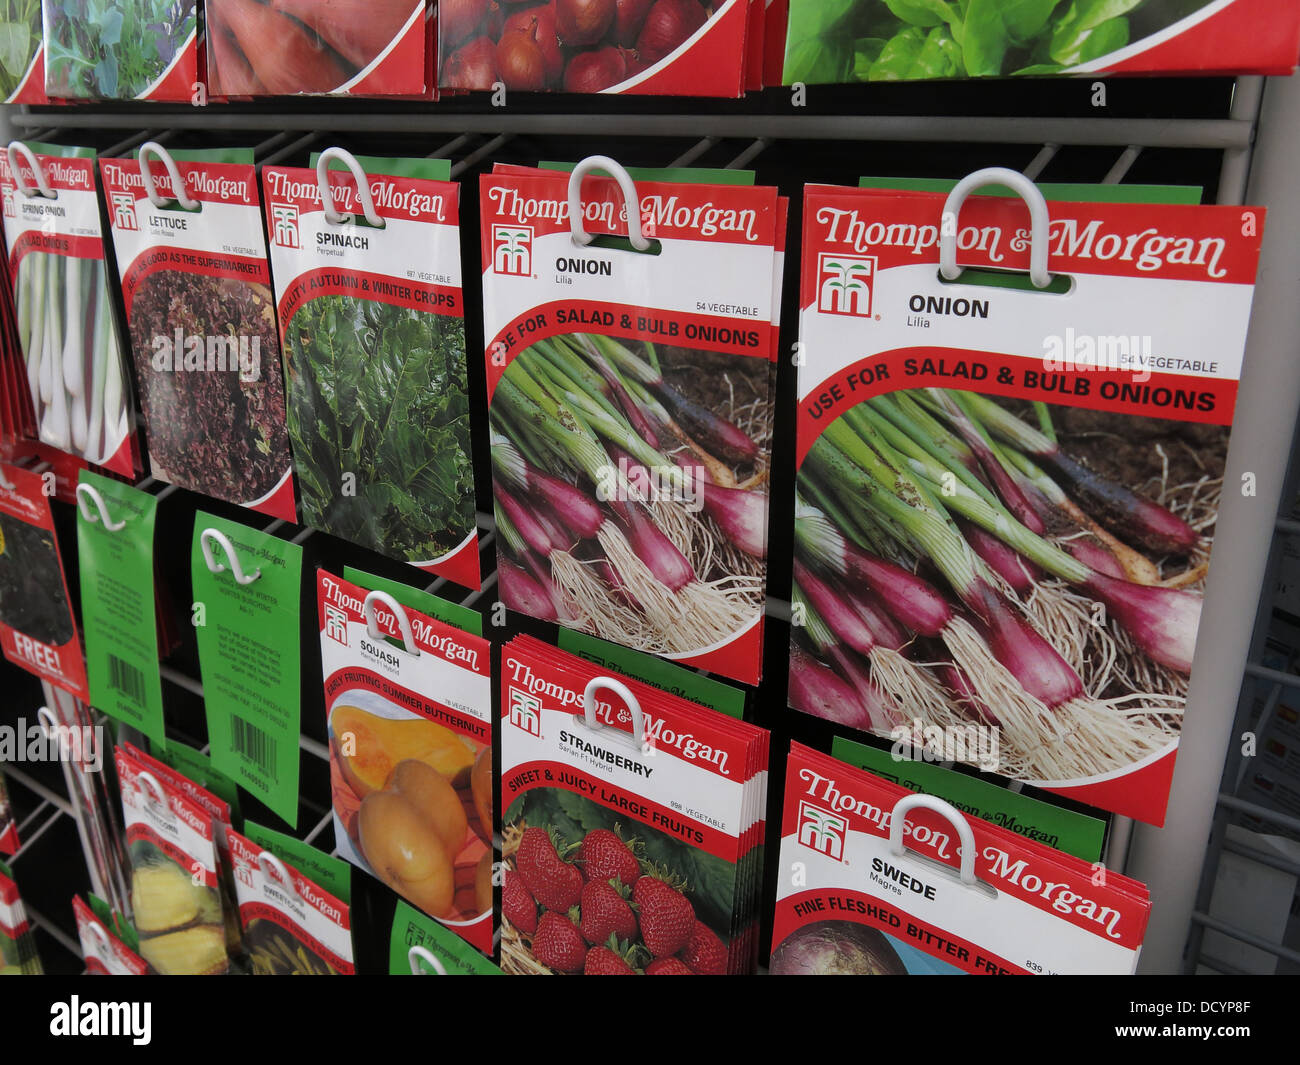 Onion Thompson & Morgan Garden Allotment Seed packets in garden centre / supermarket, now popular again th Great - Stock Image